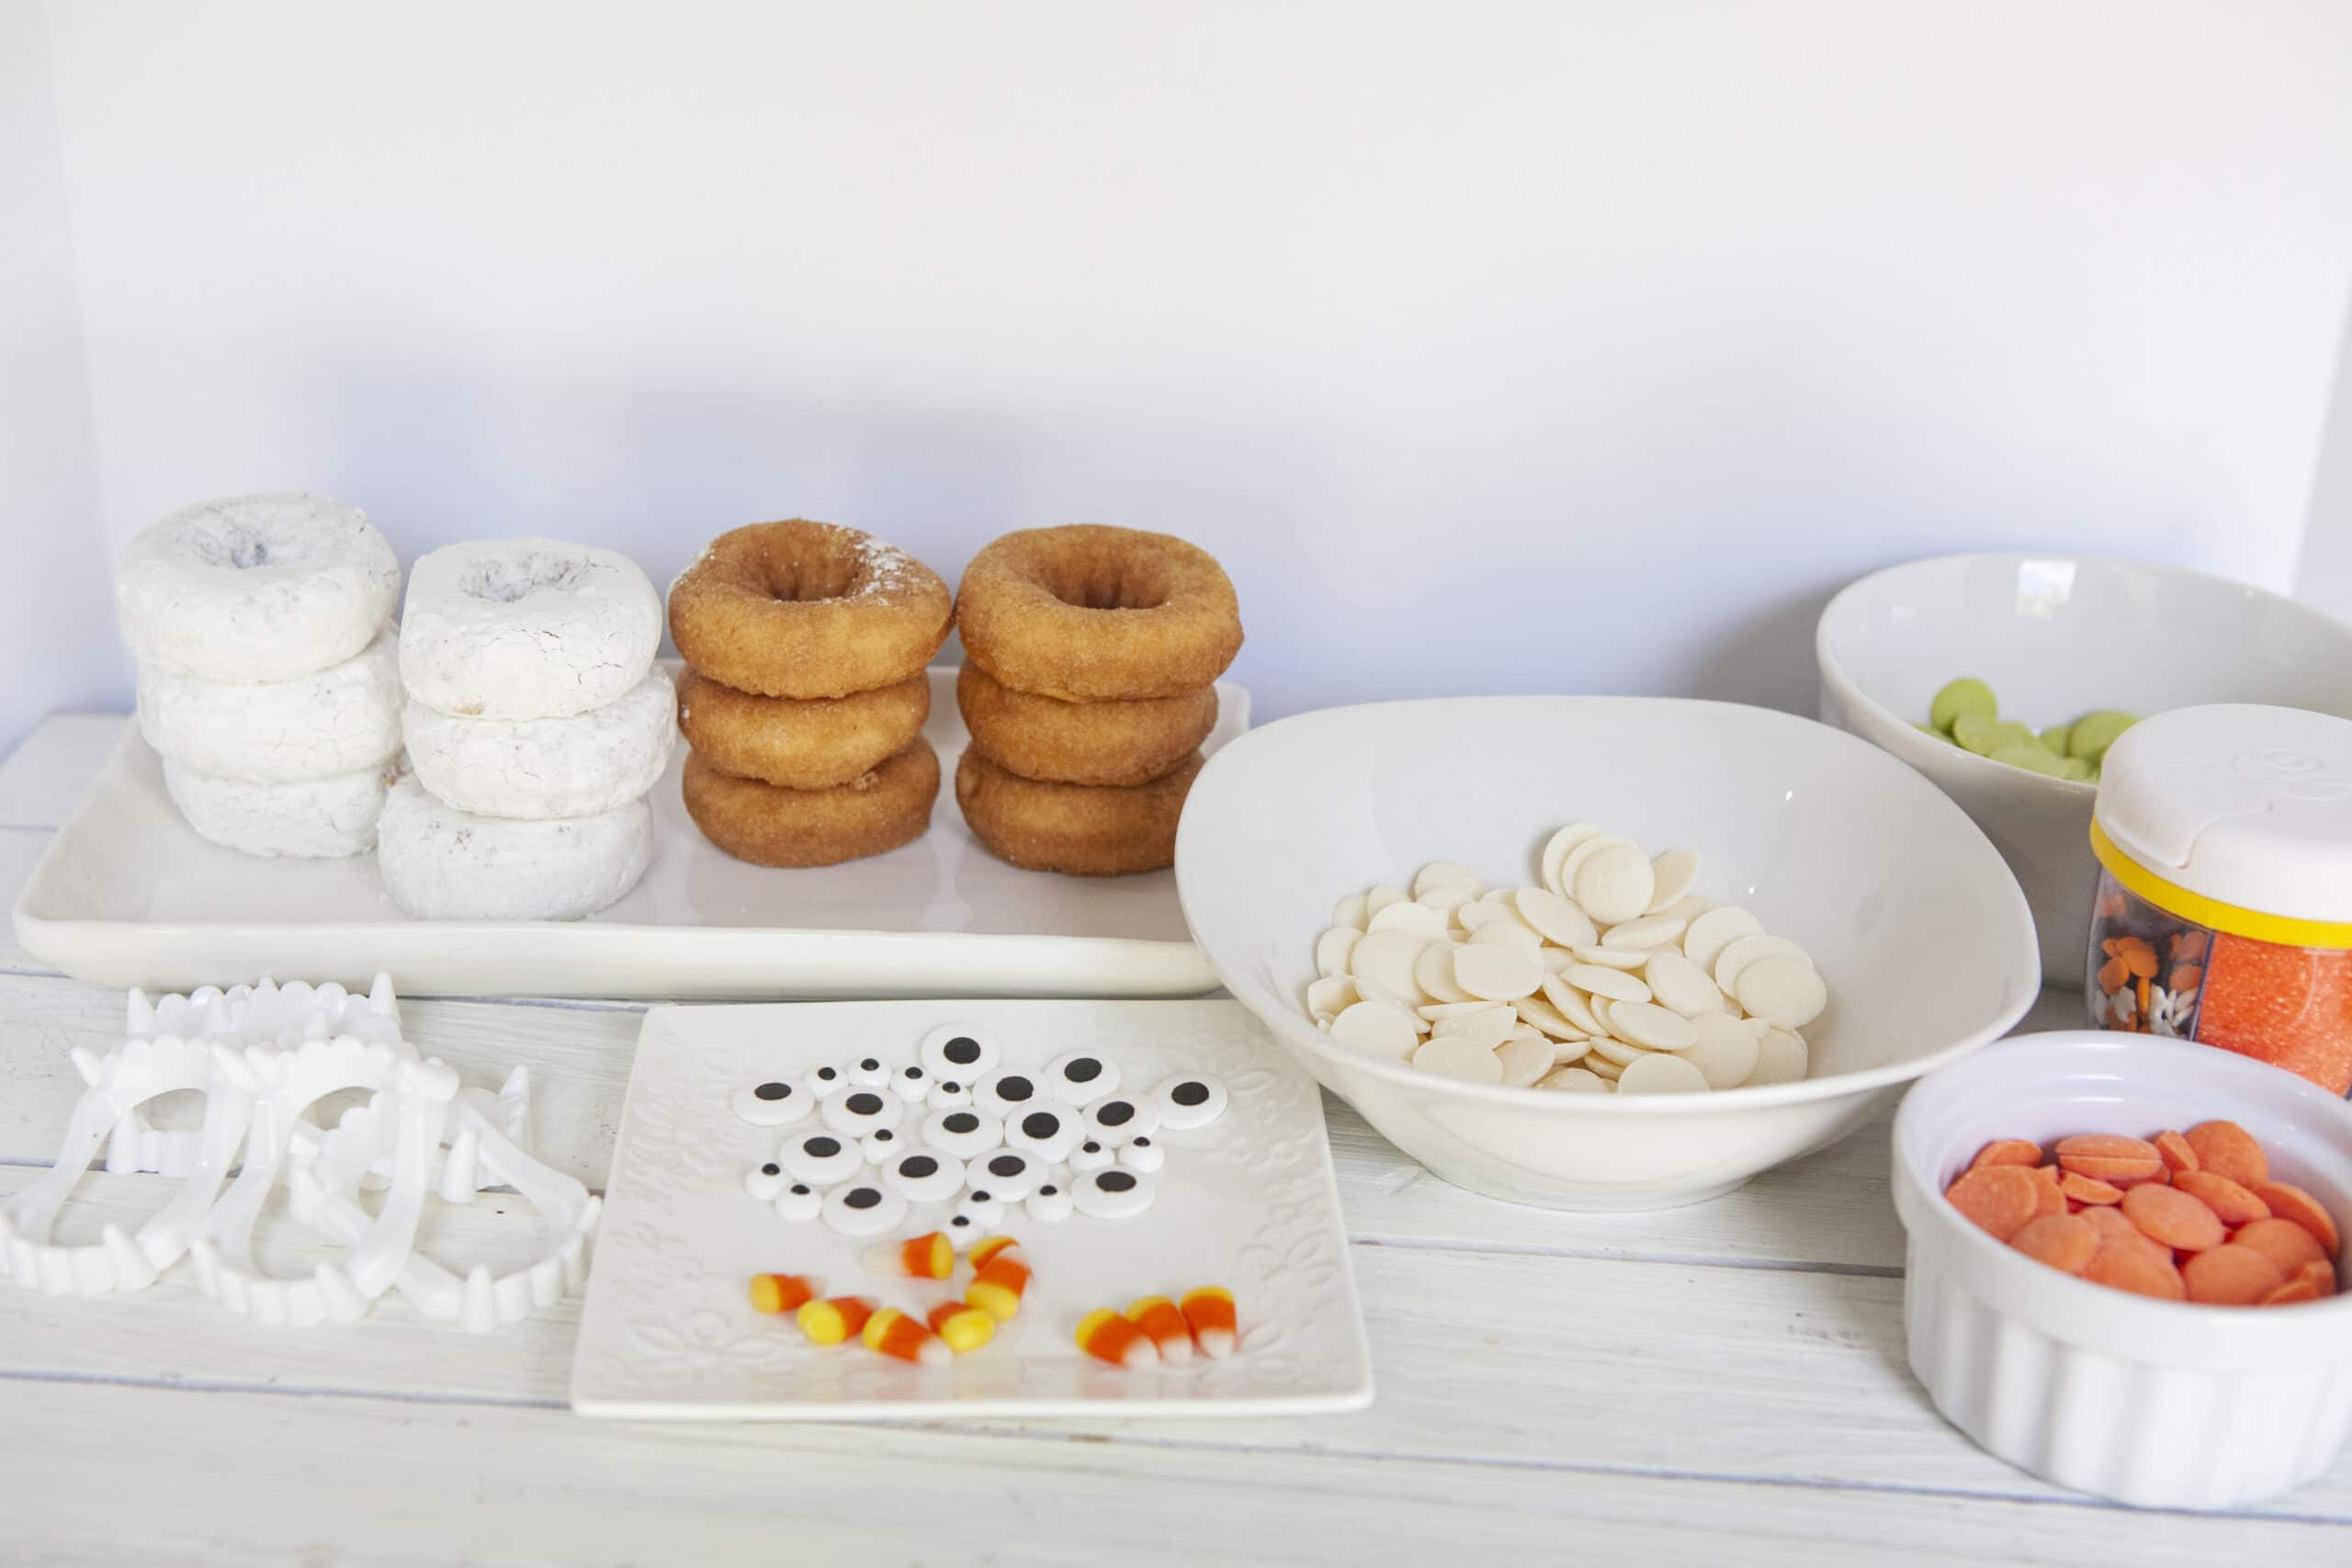 Monster Donuts Bar. Make these spooky cute Monster Donuts for your next Halloween event. Made with your favorite donuts as a base, you can create and decorate vampires, mummies, and other iconic edible Halloween monsters.